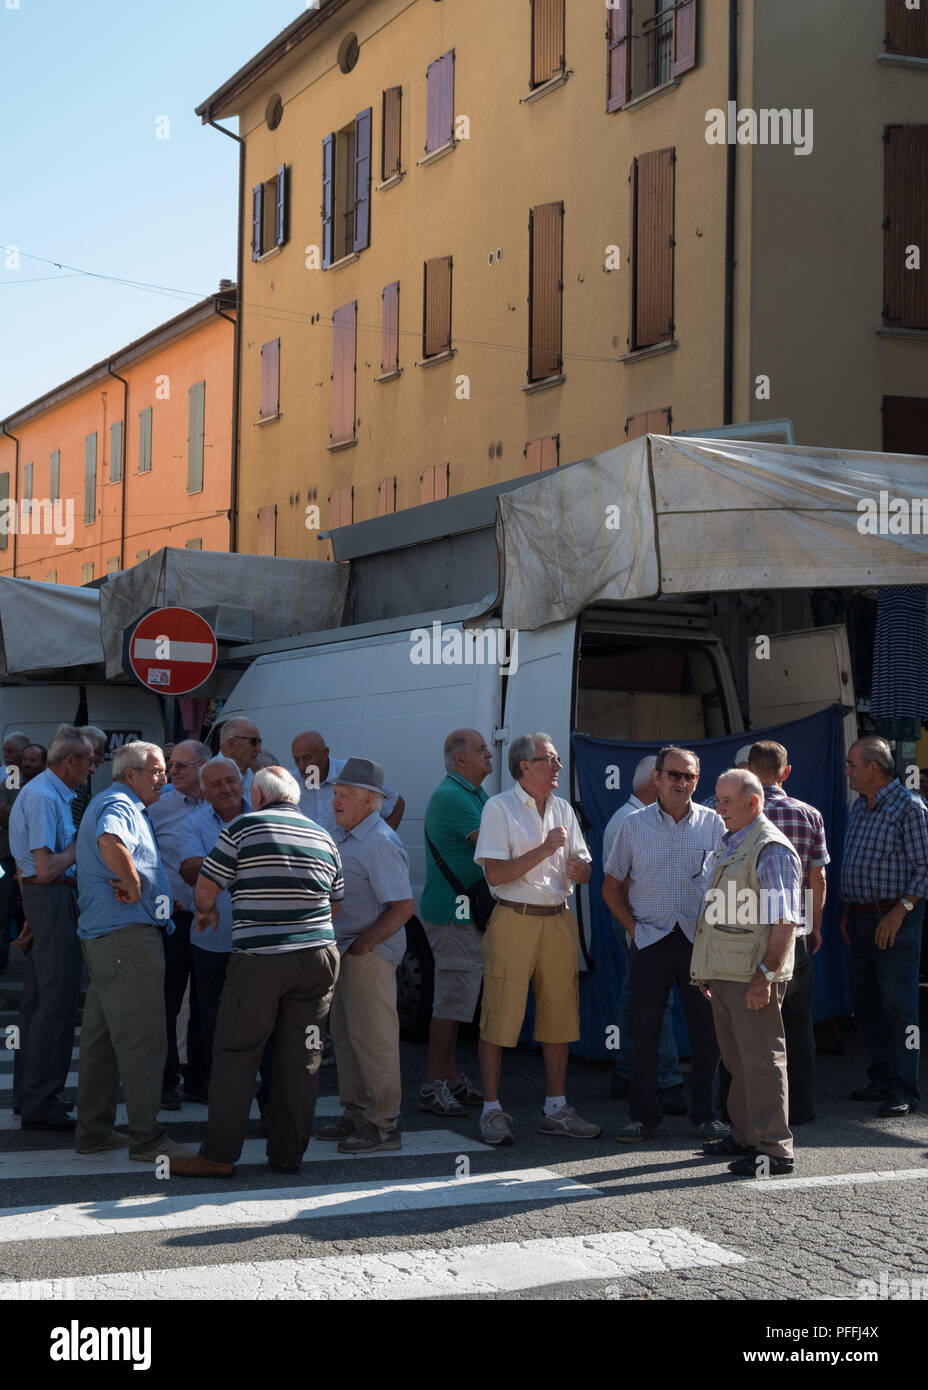 Old men gathering by busy street for a chat on market day in the small city of Castel San Pietro Terme, Metropolitan City of Bologna, Italy, Europe. - Stock Image